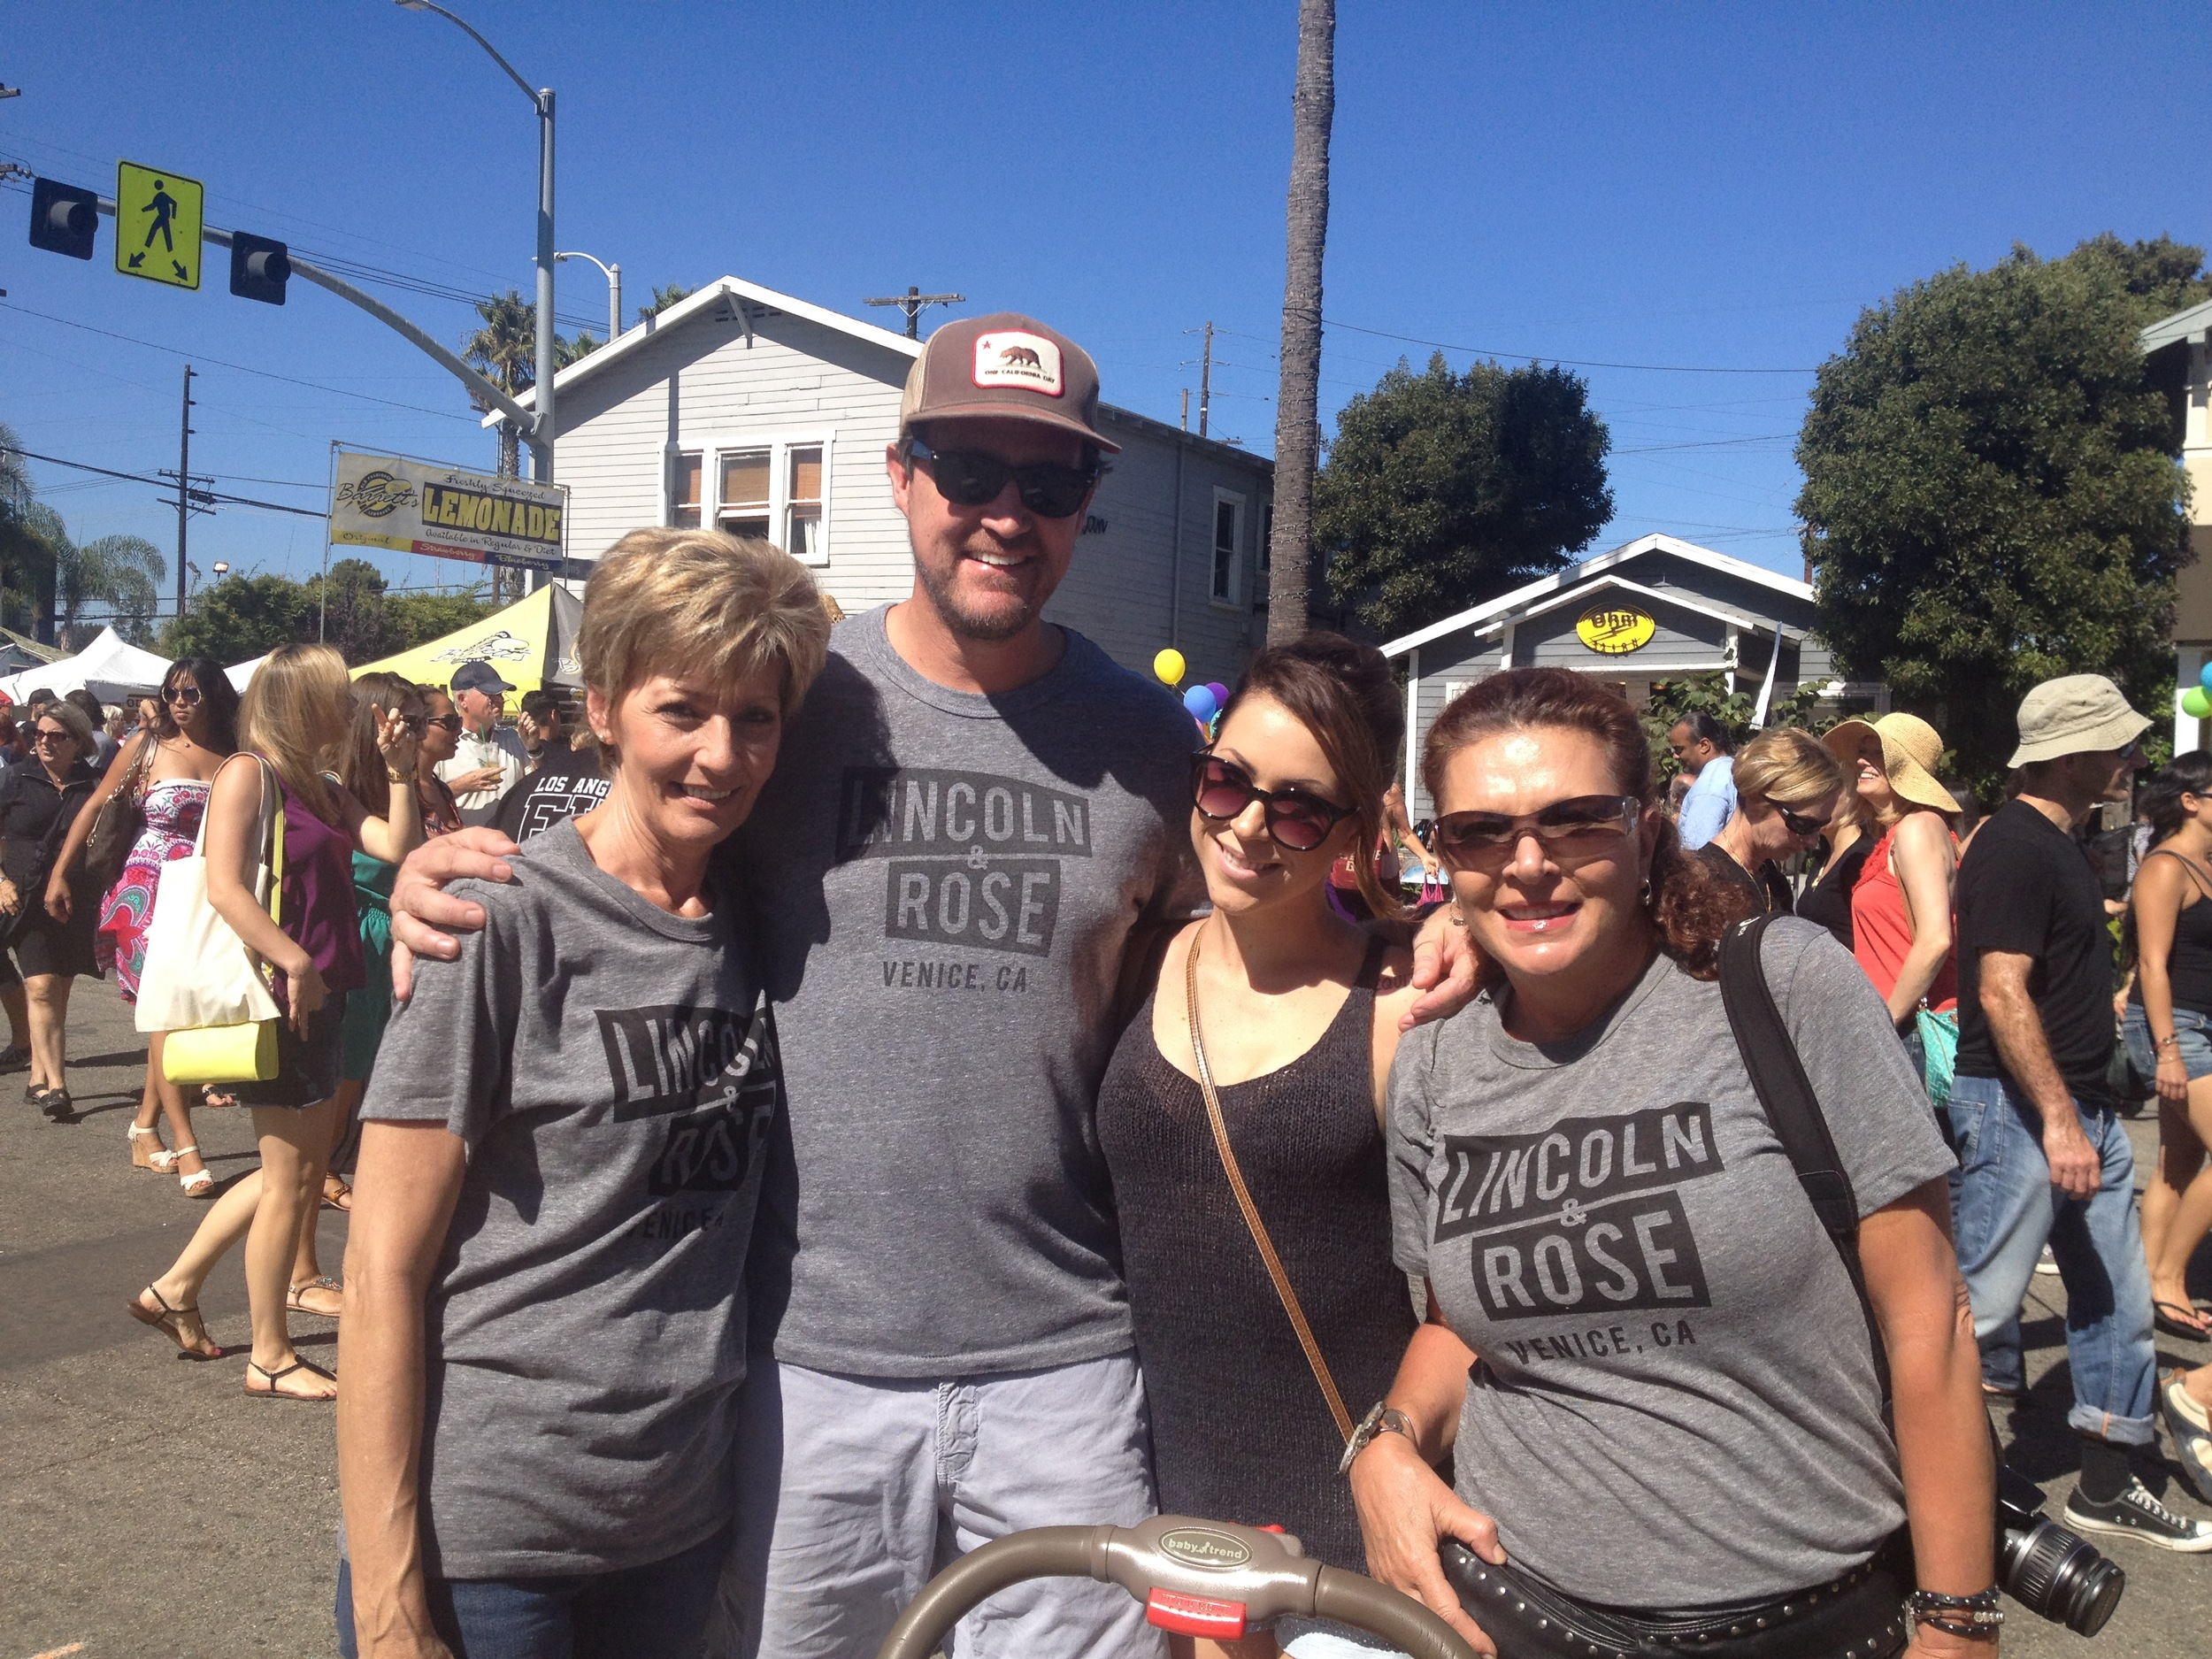 Friends and family looking fab in their L&R tees! (Photo by Nicole Reed)